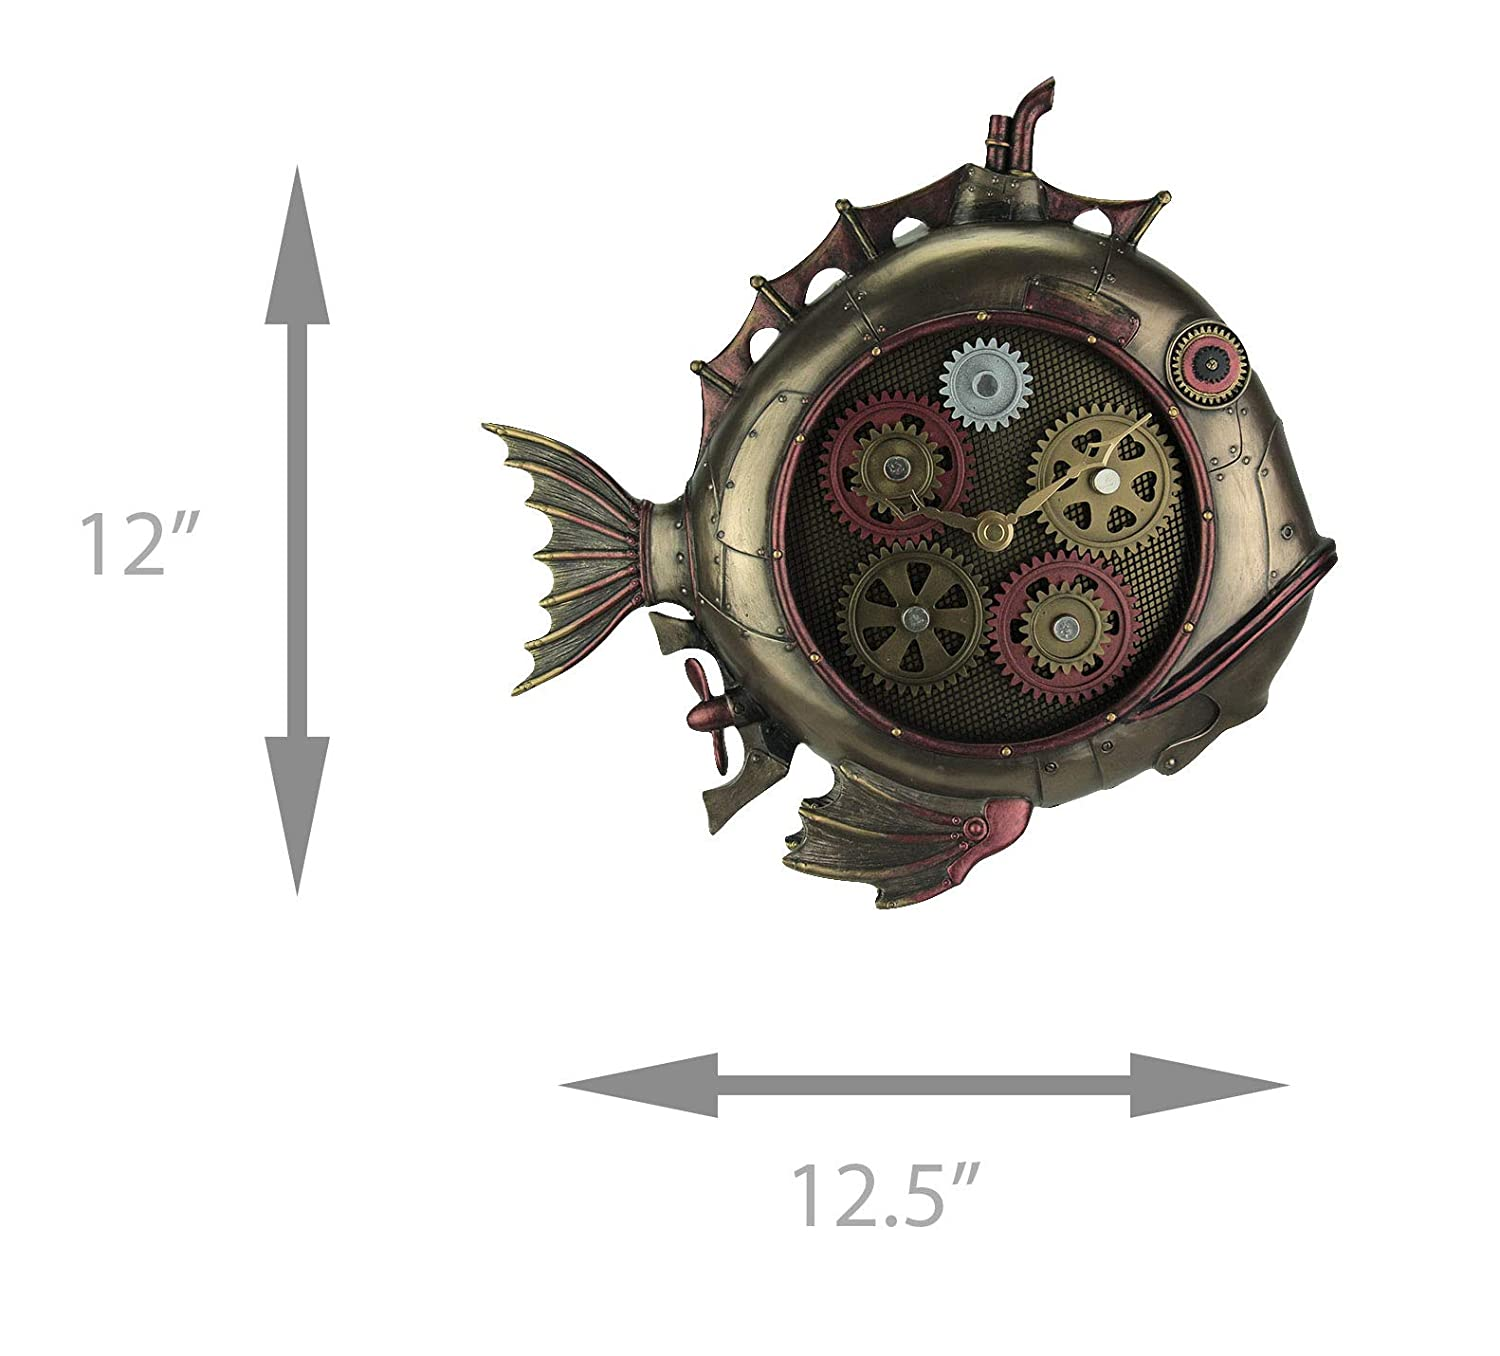 Amazon.com: Resin Wall Clocks Steampunk Style Fish Submarine Wall Clock 12.5 X 12 X 2 Inches Bronze: Home & Kitchen